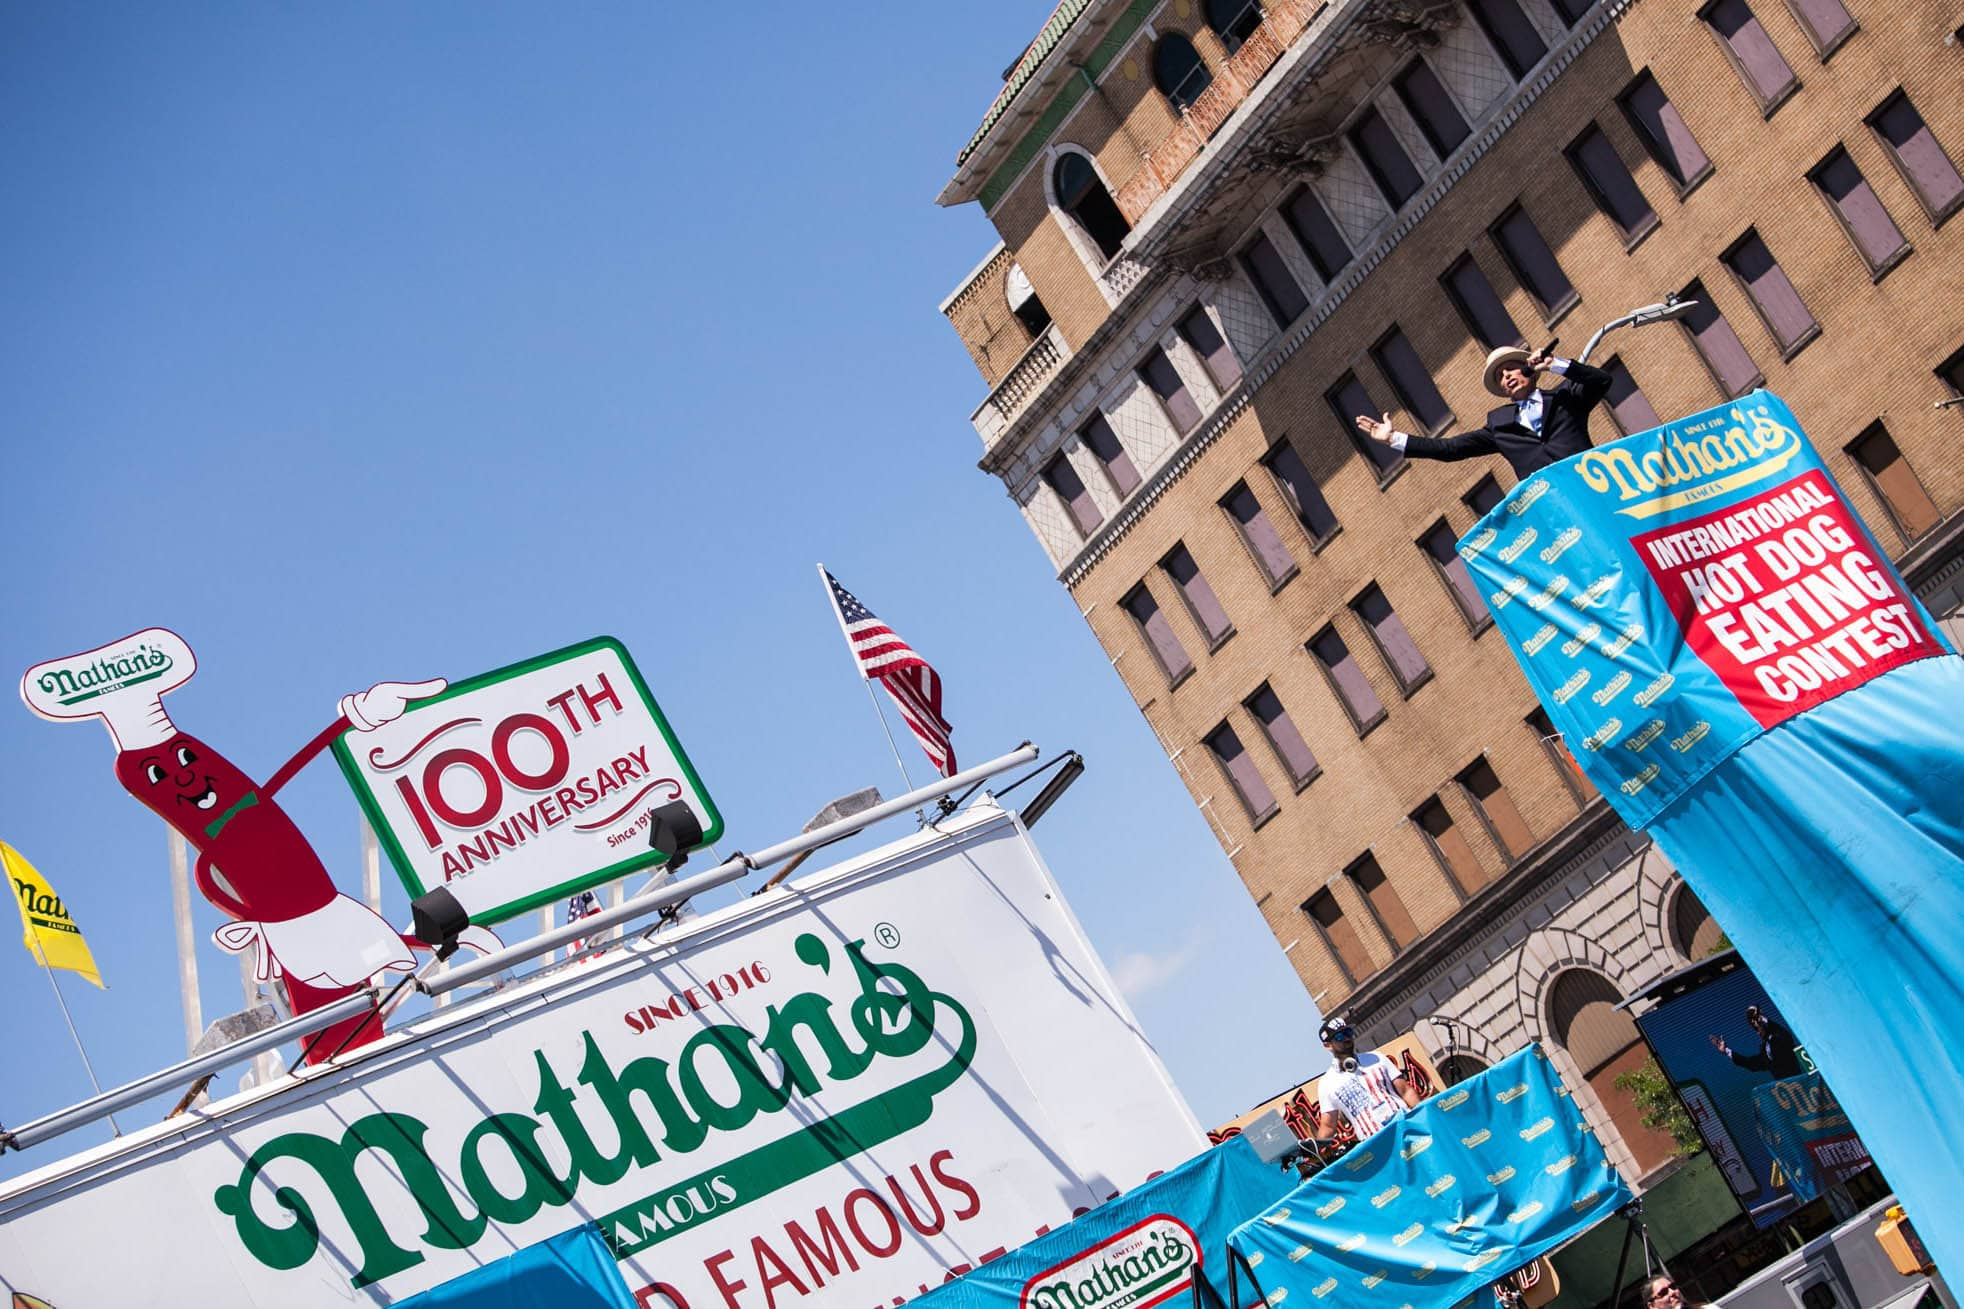 George Shea introduced the Nathan's Famous hot dog eating contest at the 100th anniversary.